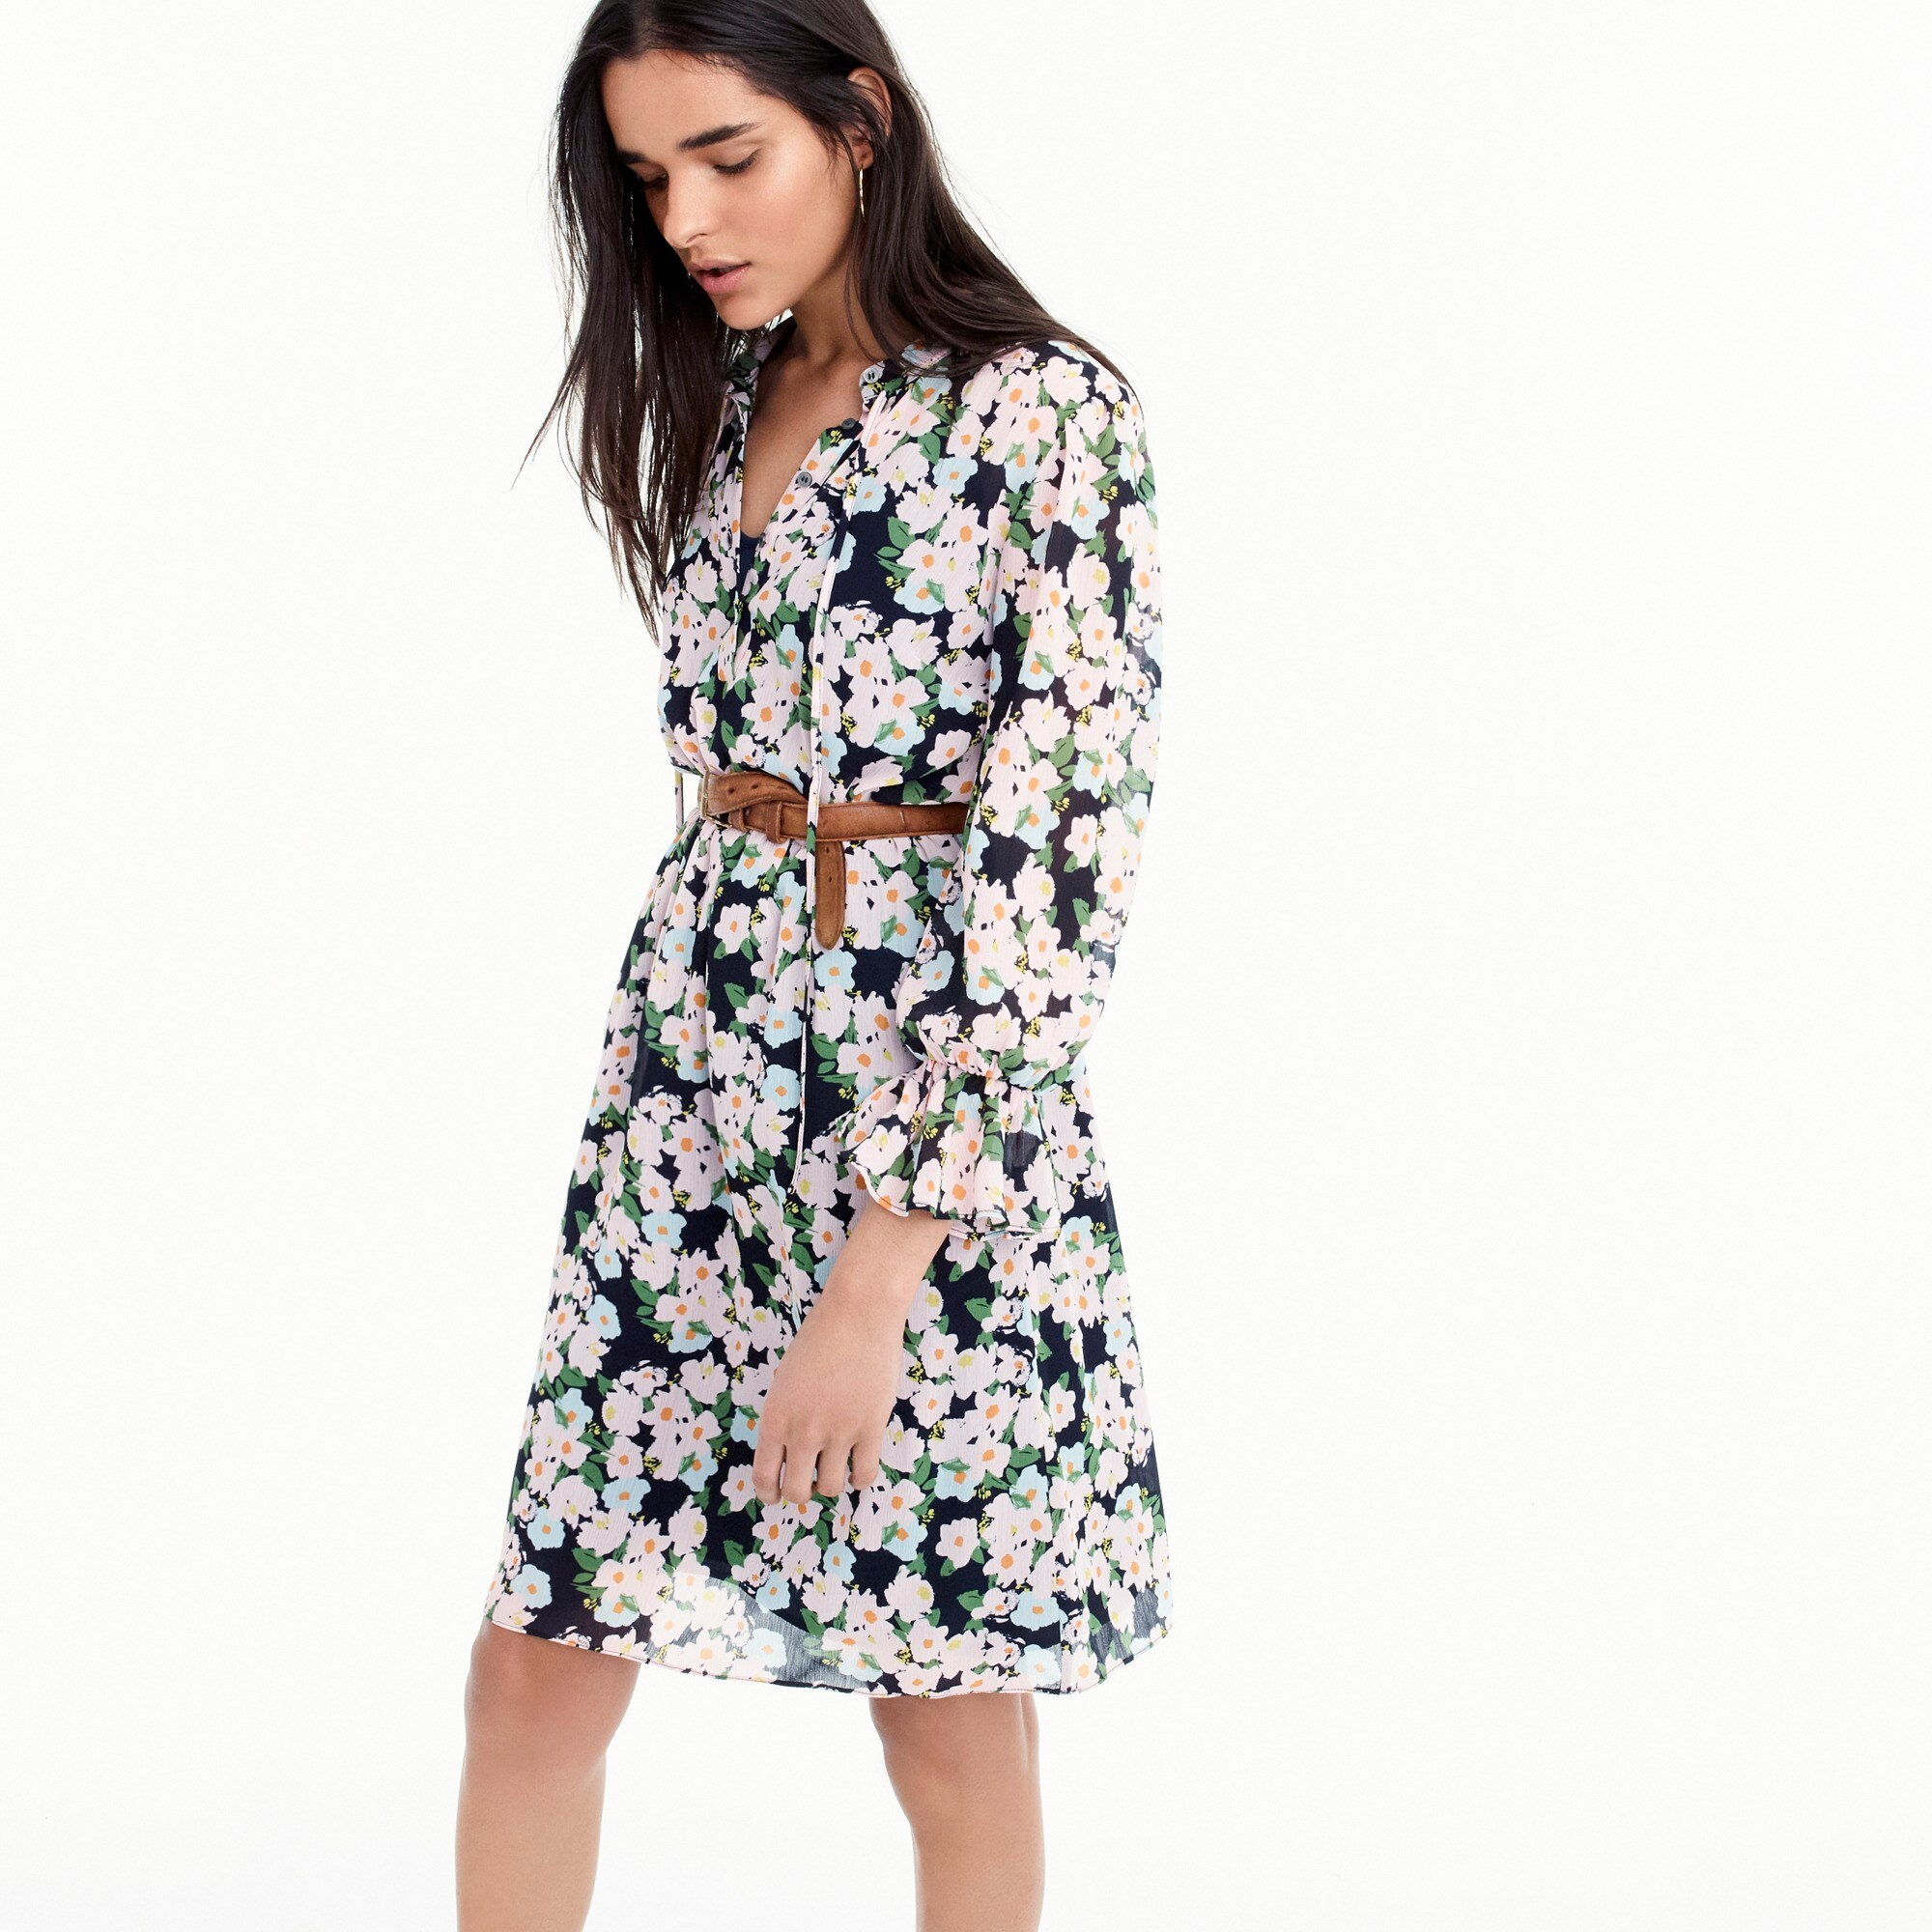 women's petite j.crew mercantile drapey tie-front dress in french floral - women's casual dresses